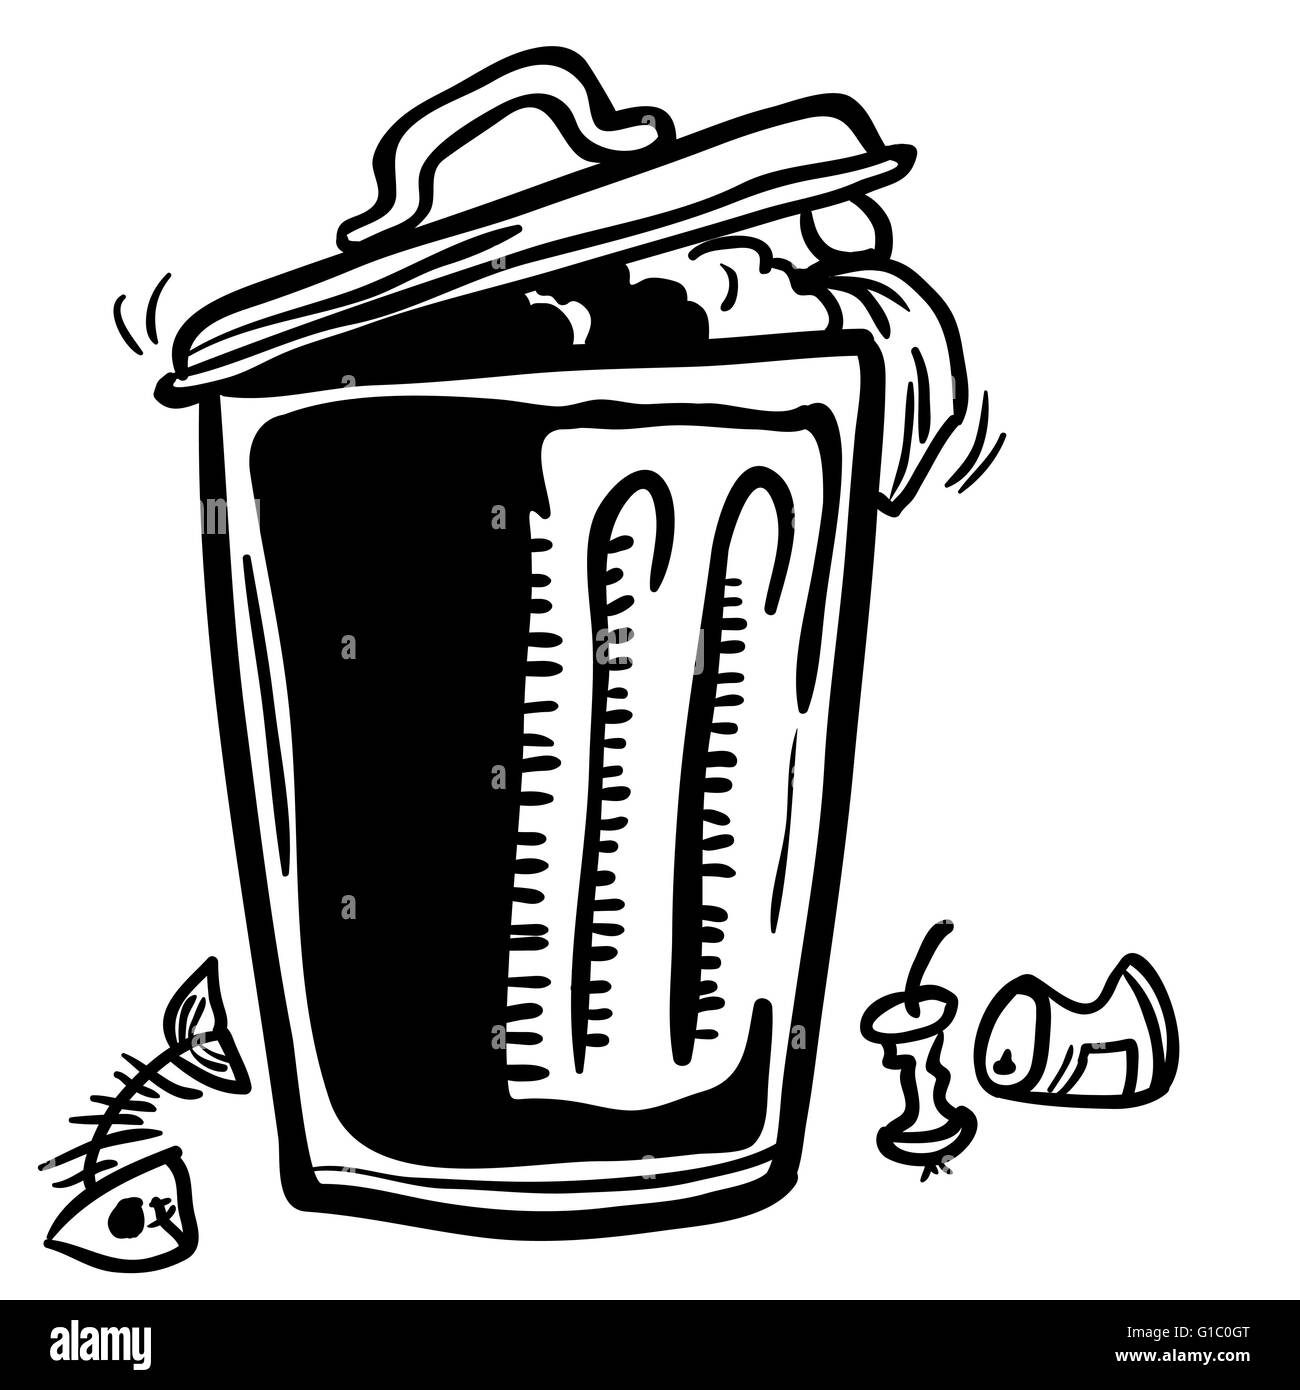 trash can with garbage around cartoon doodle - Stock Image